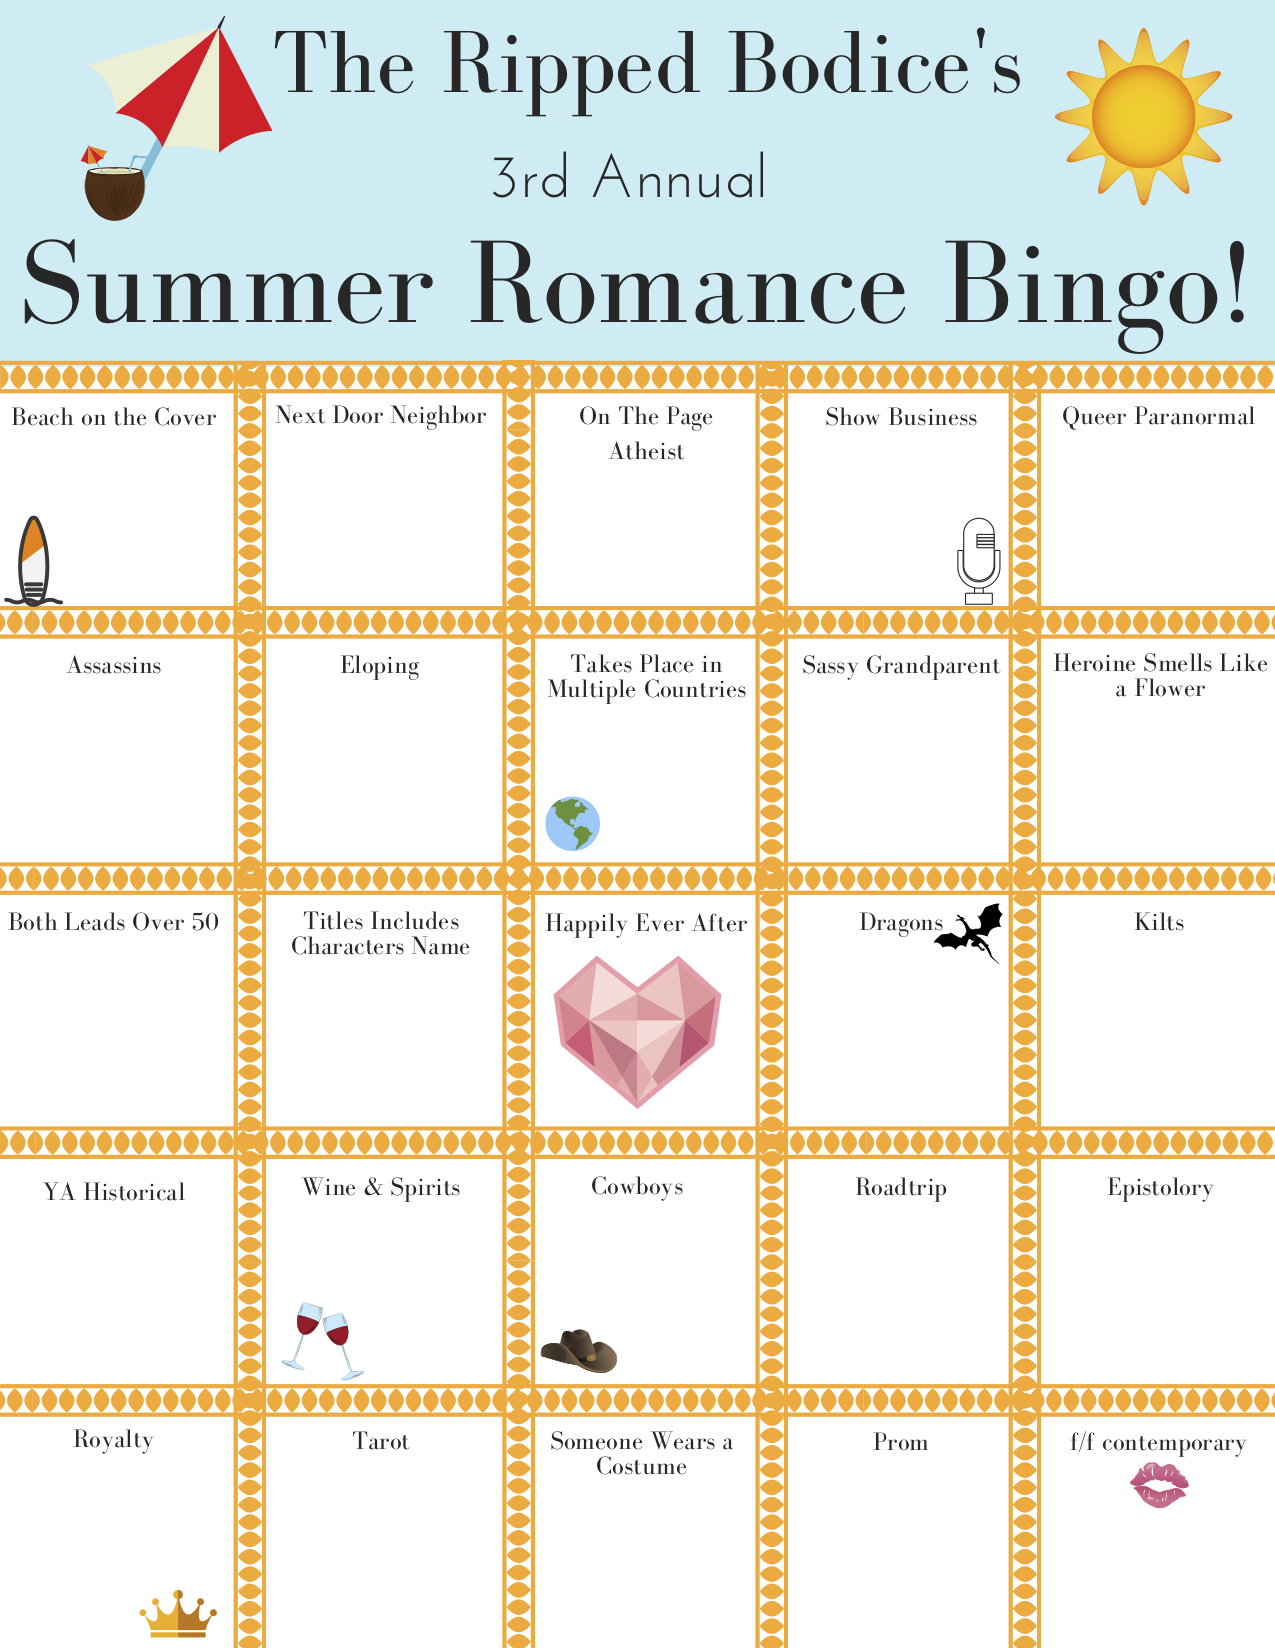 Recommendations for The Ripped Bodice's 2019 Summer Romance